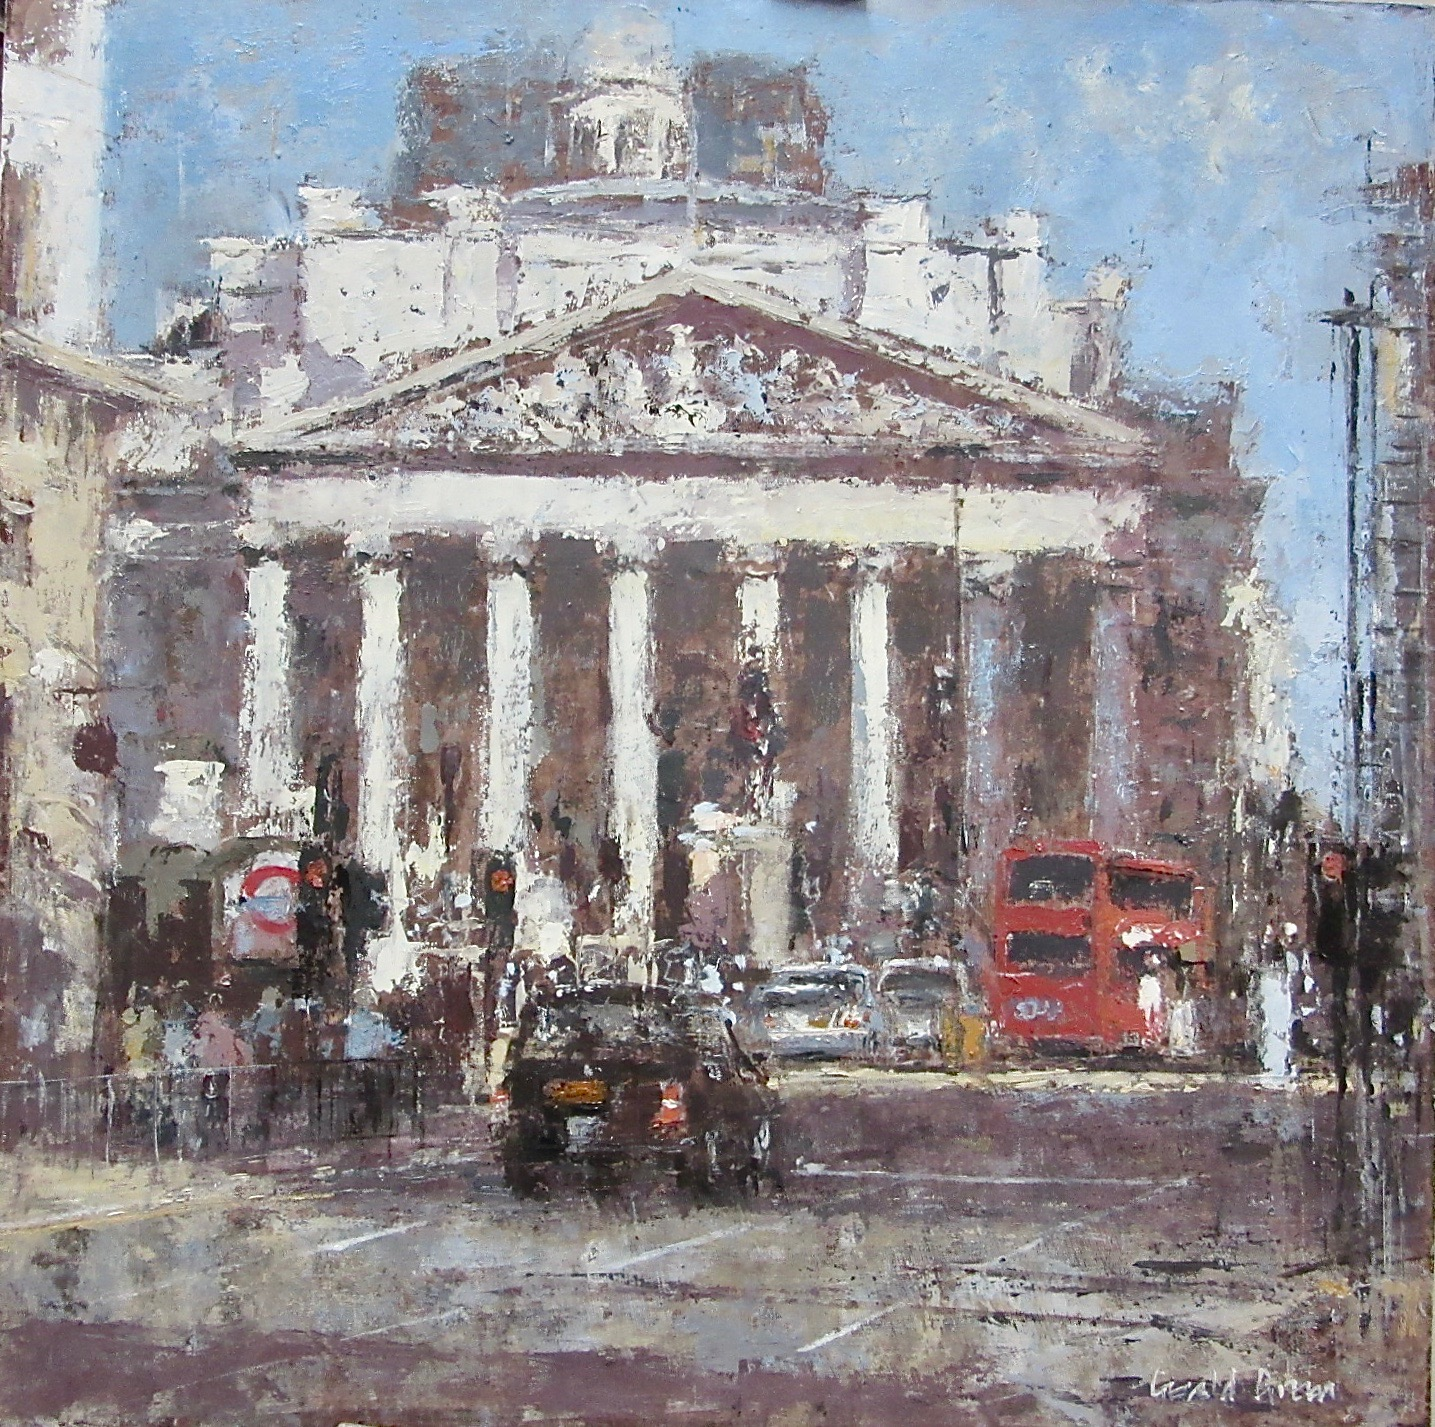 Towards the Royal Exchange London: 16 x 16 in: £1285  (currently at The Wykeham Gallery Stockbridge)